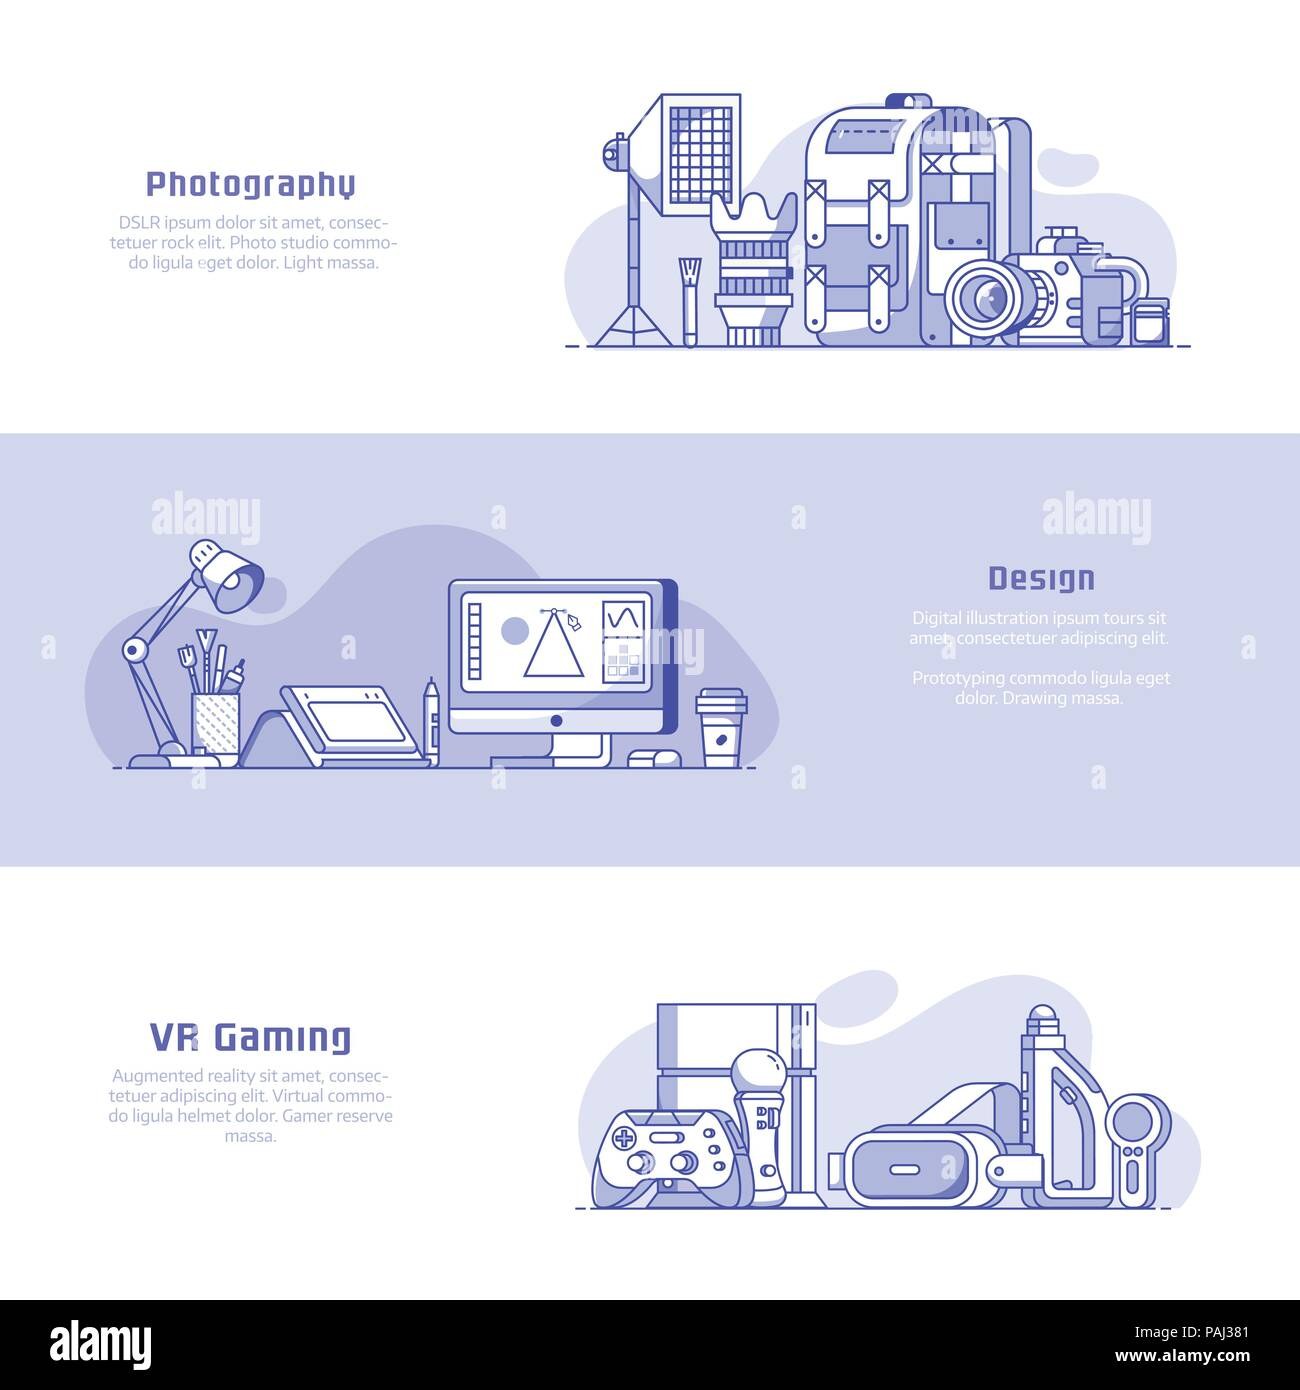 Digital media professions icons and advertising banners. Digital careers concepts with equipment for photography, graphic design and virtual reality p - Stock Vector